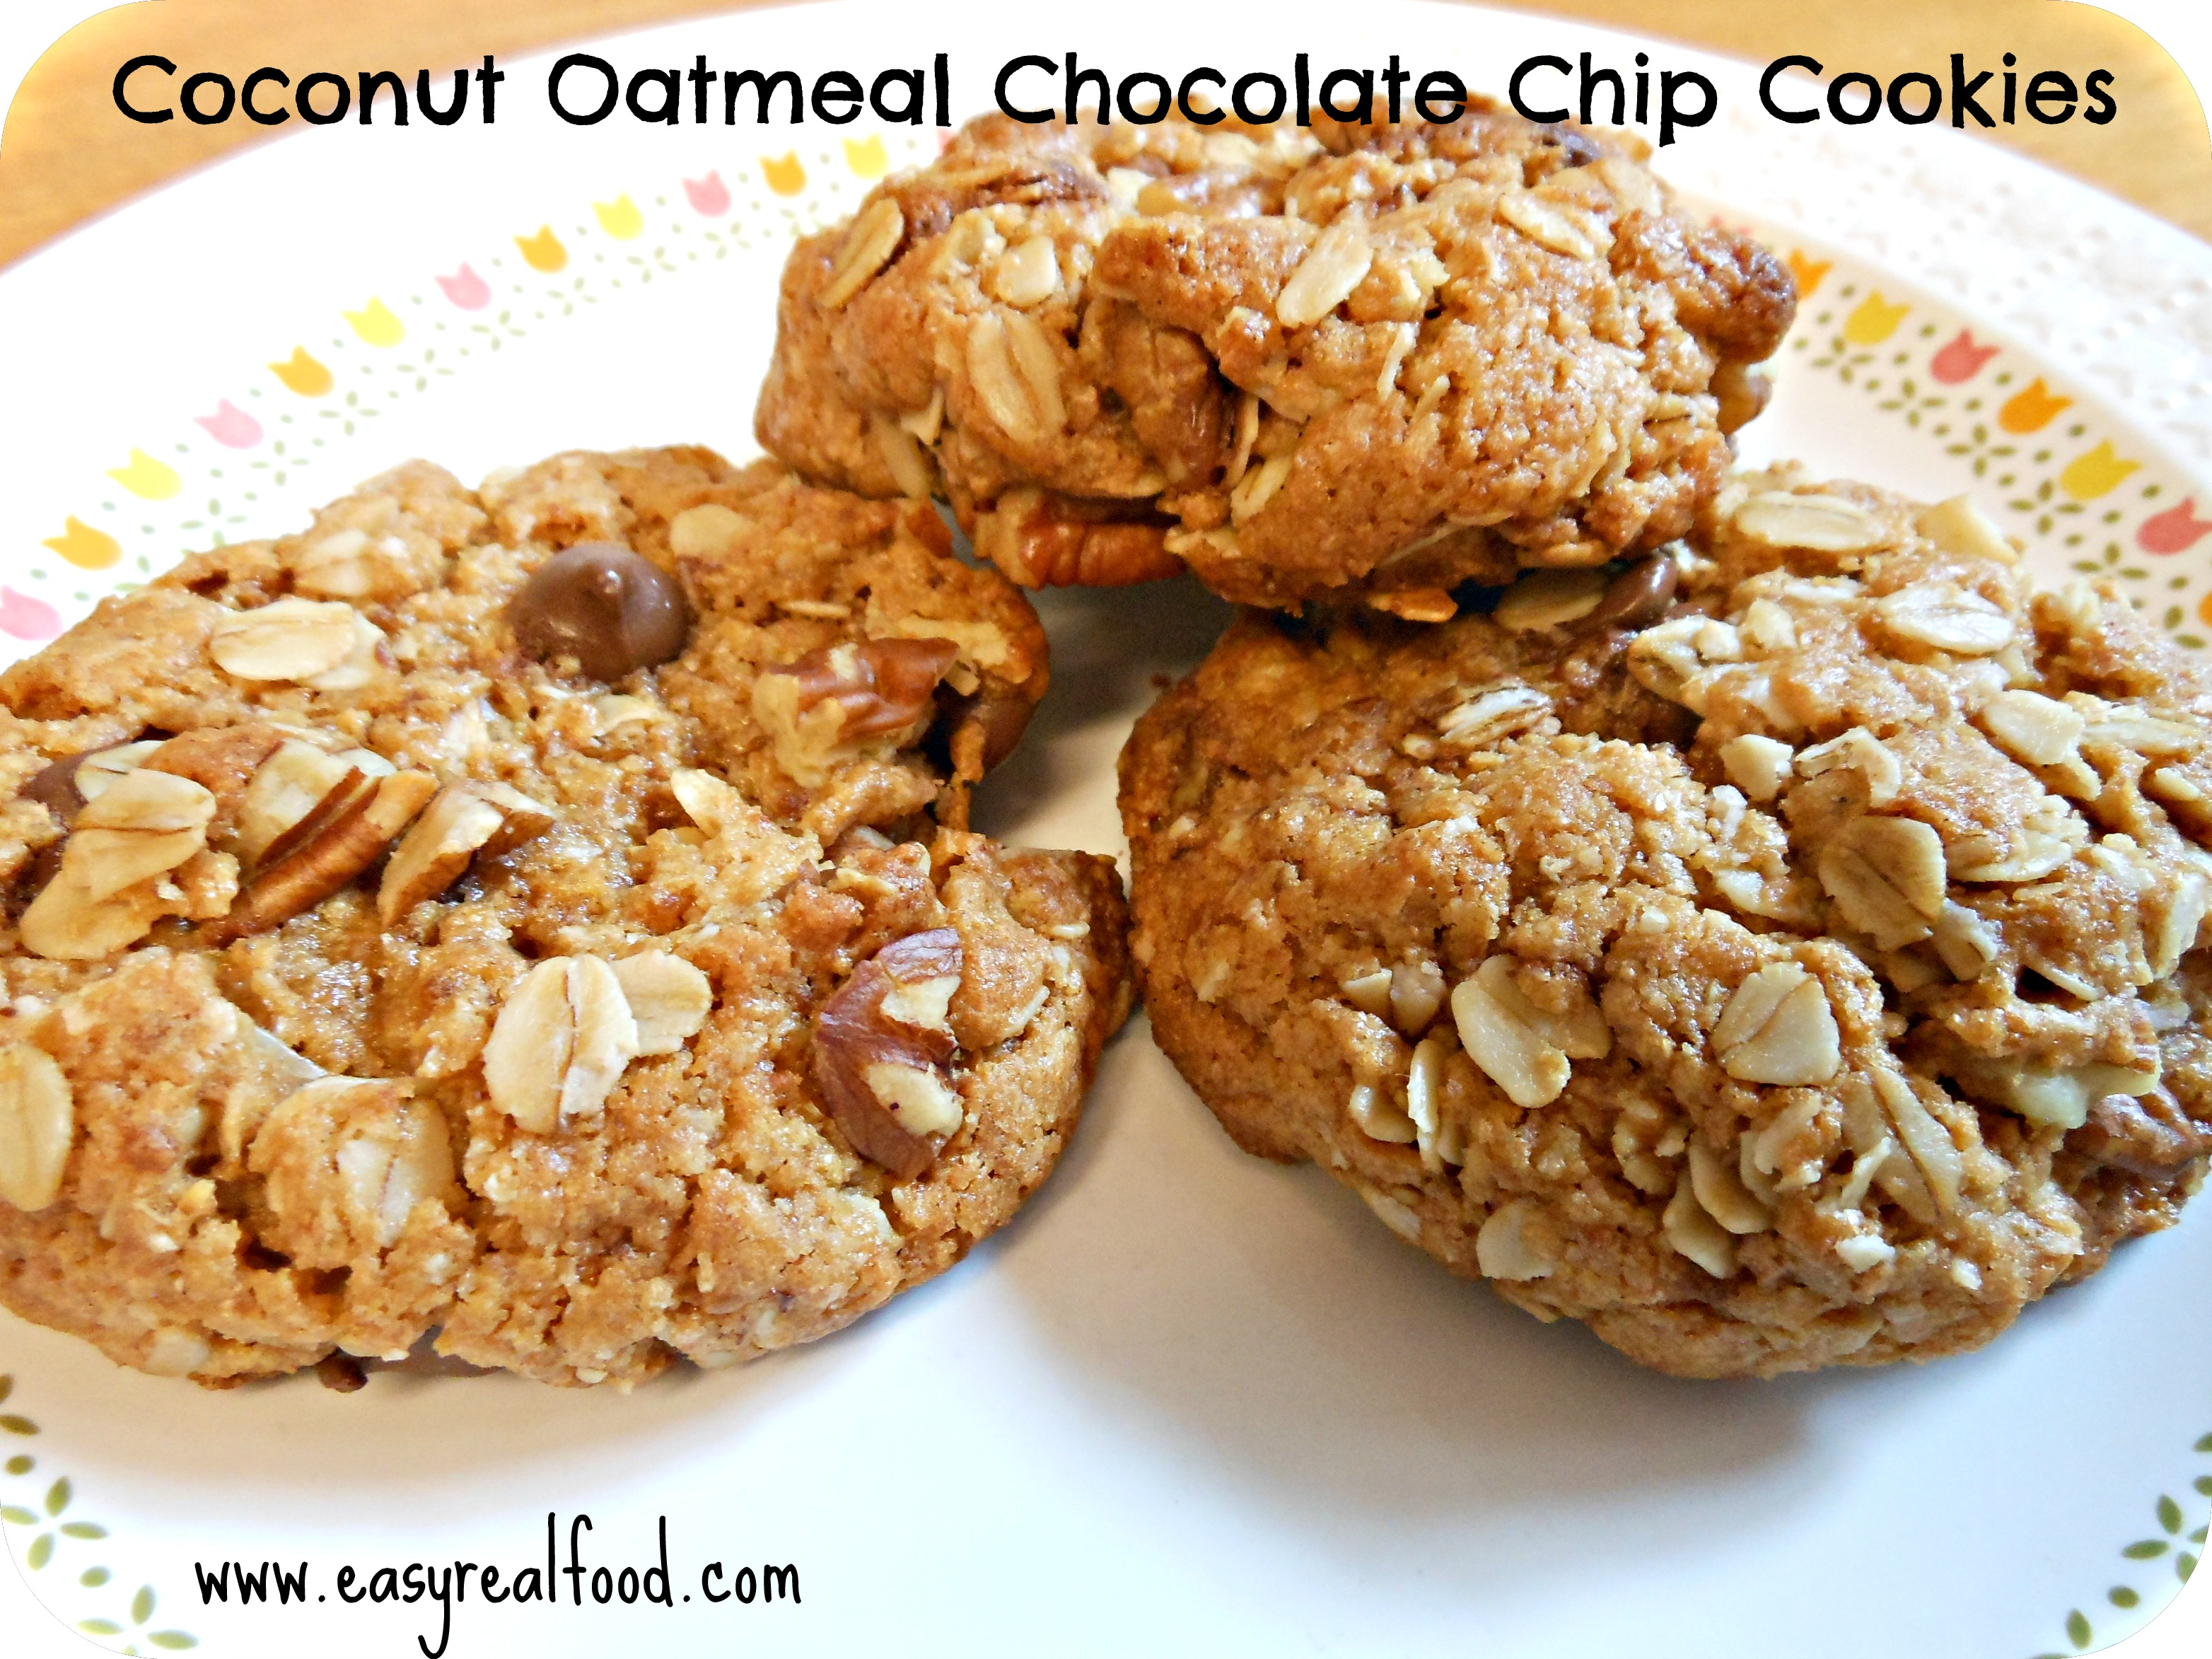 Coconut Oatmeal Chocolate Chip Cookies - Anxiety Relief For Women ...